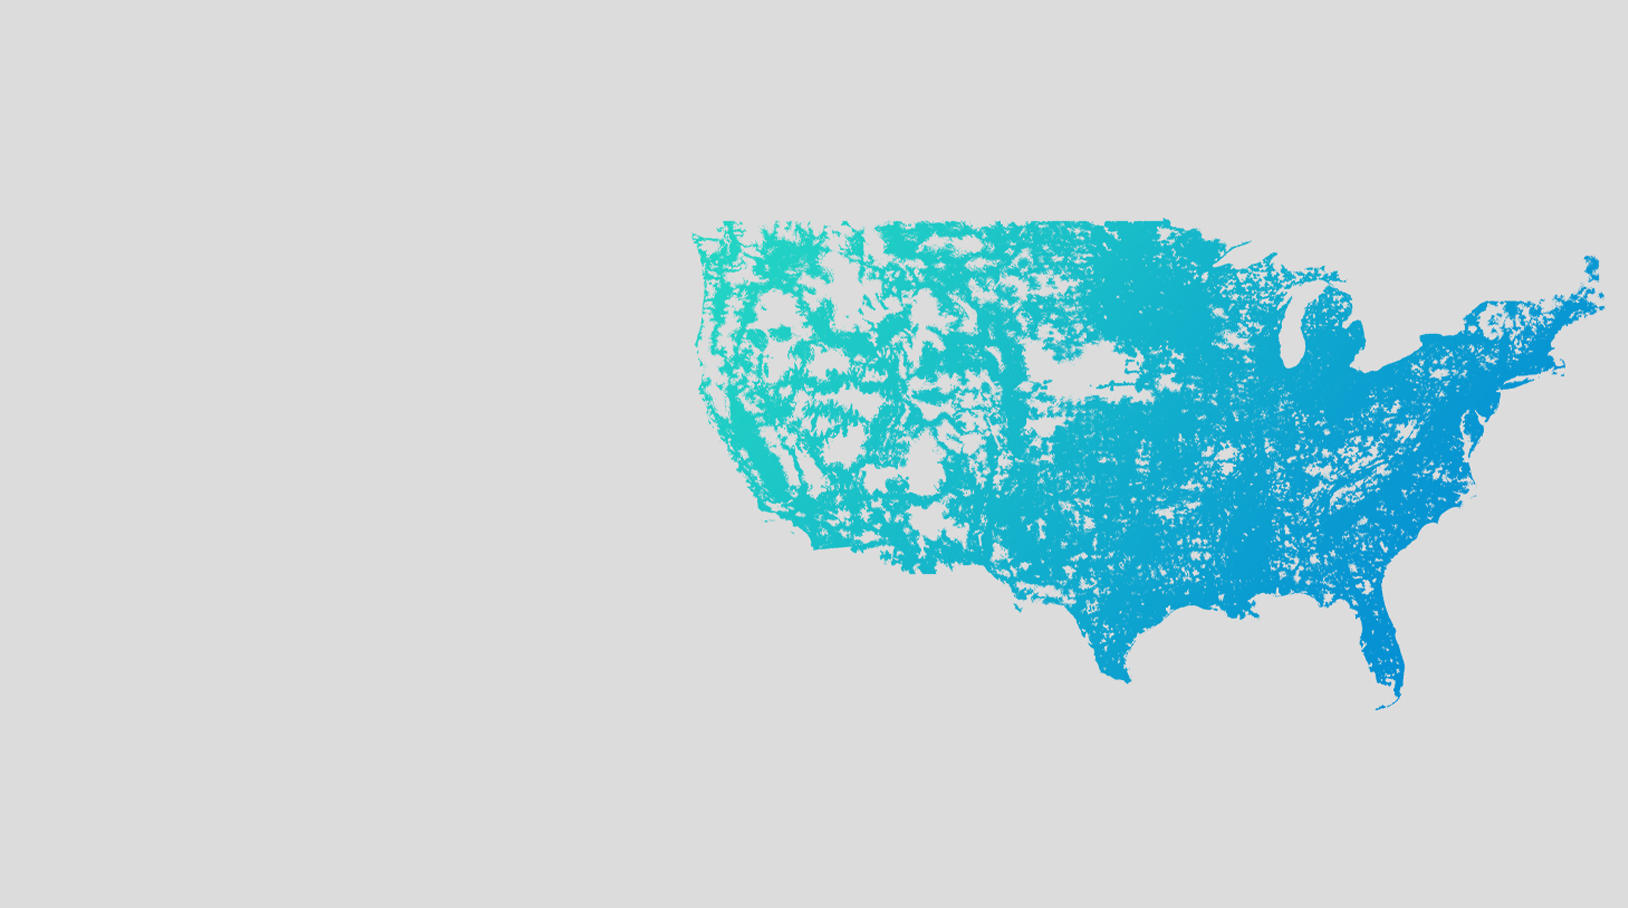 Coverage map of Altice mobile cellular service in the united states